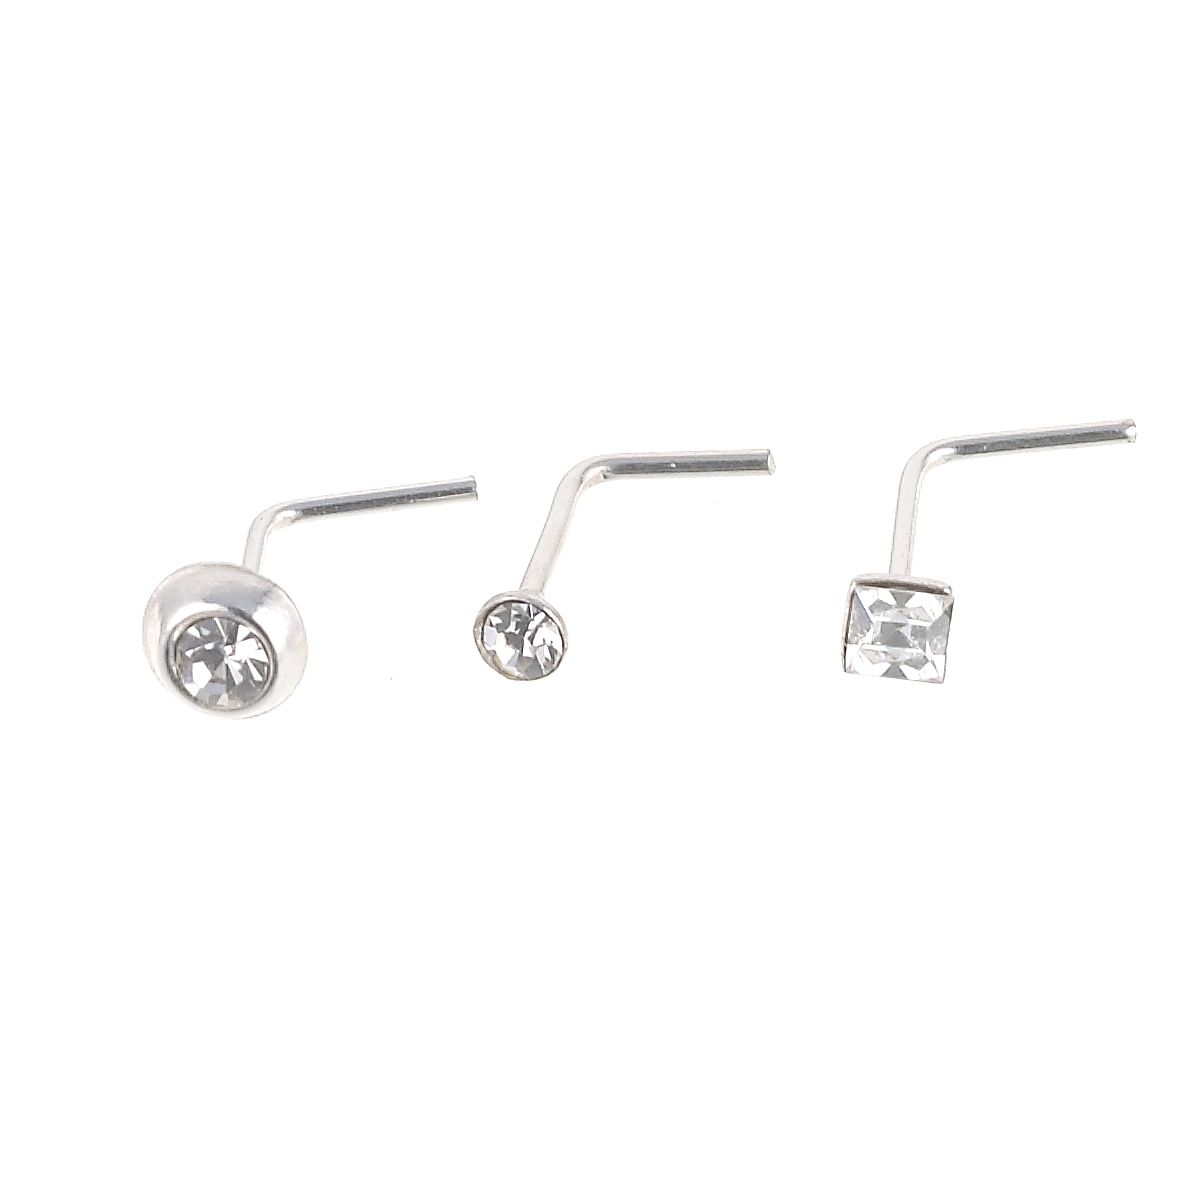 Sterling Silver Crystal Nose Studs Set Of 3 - Product number 4914058